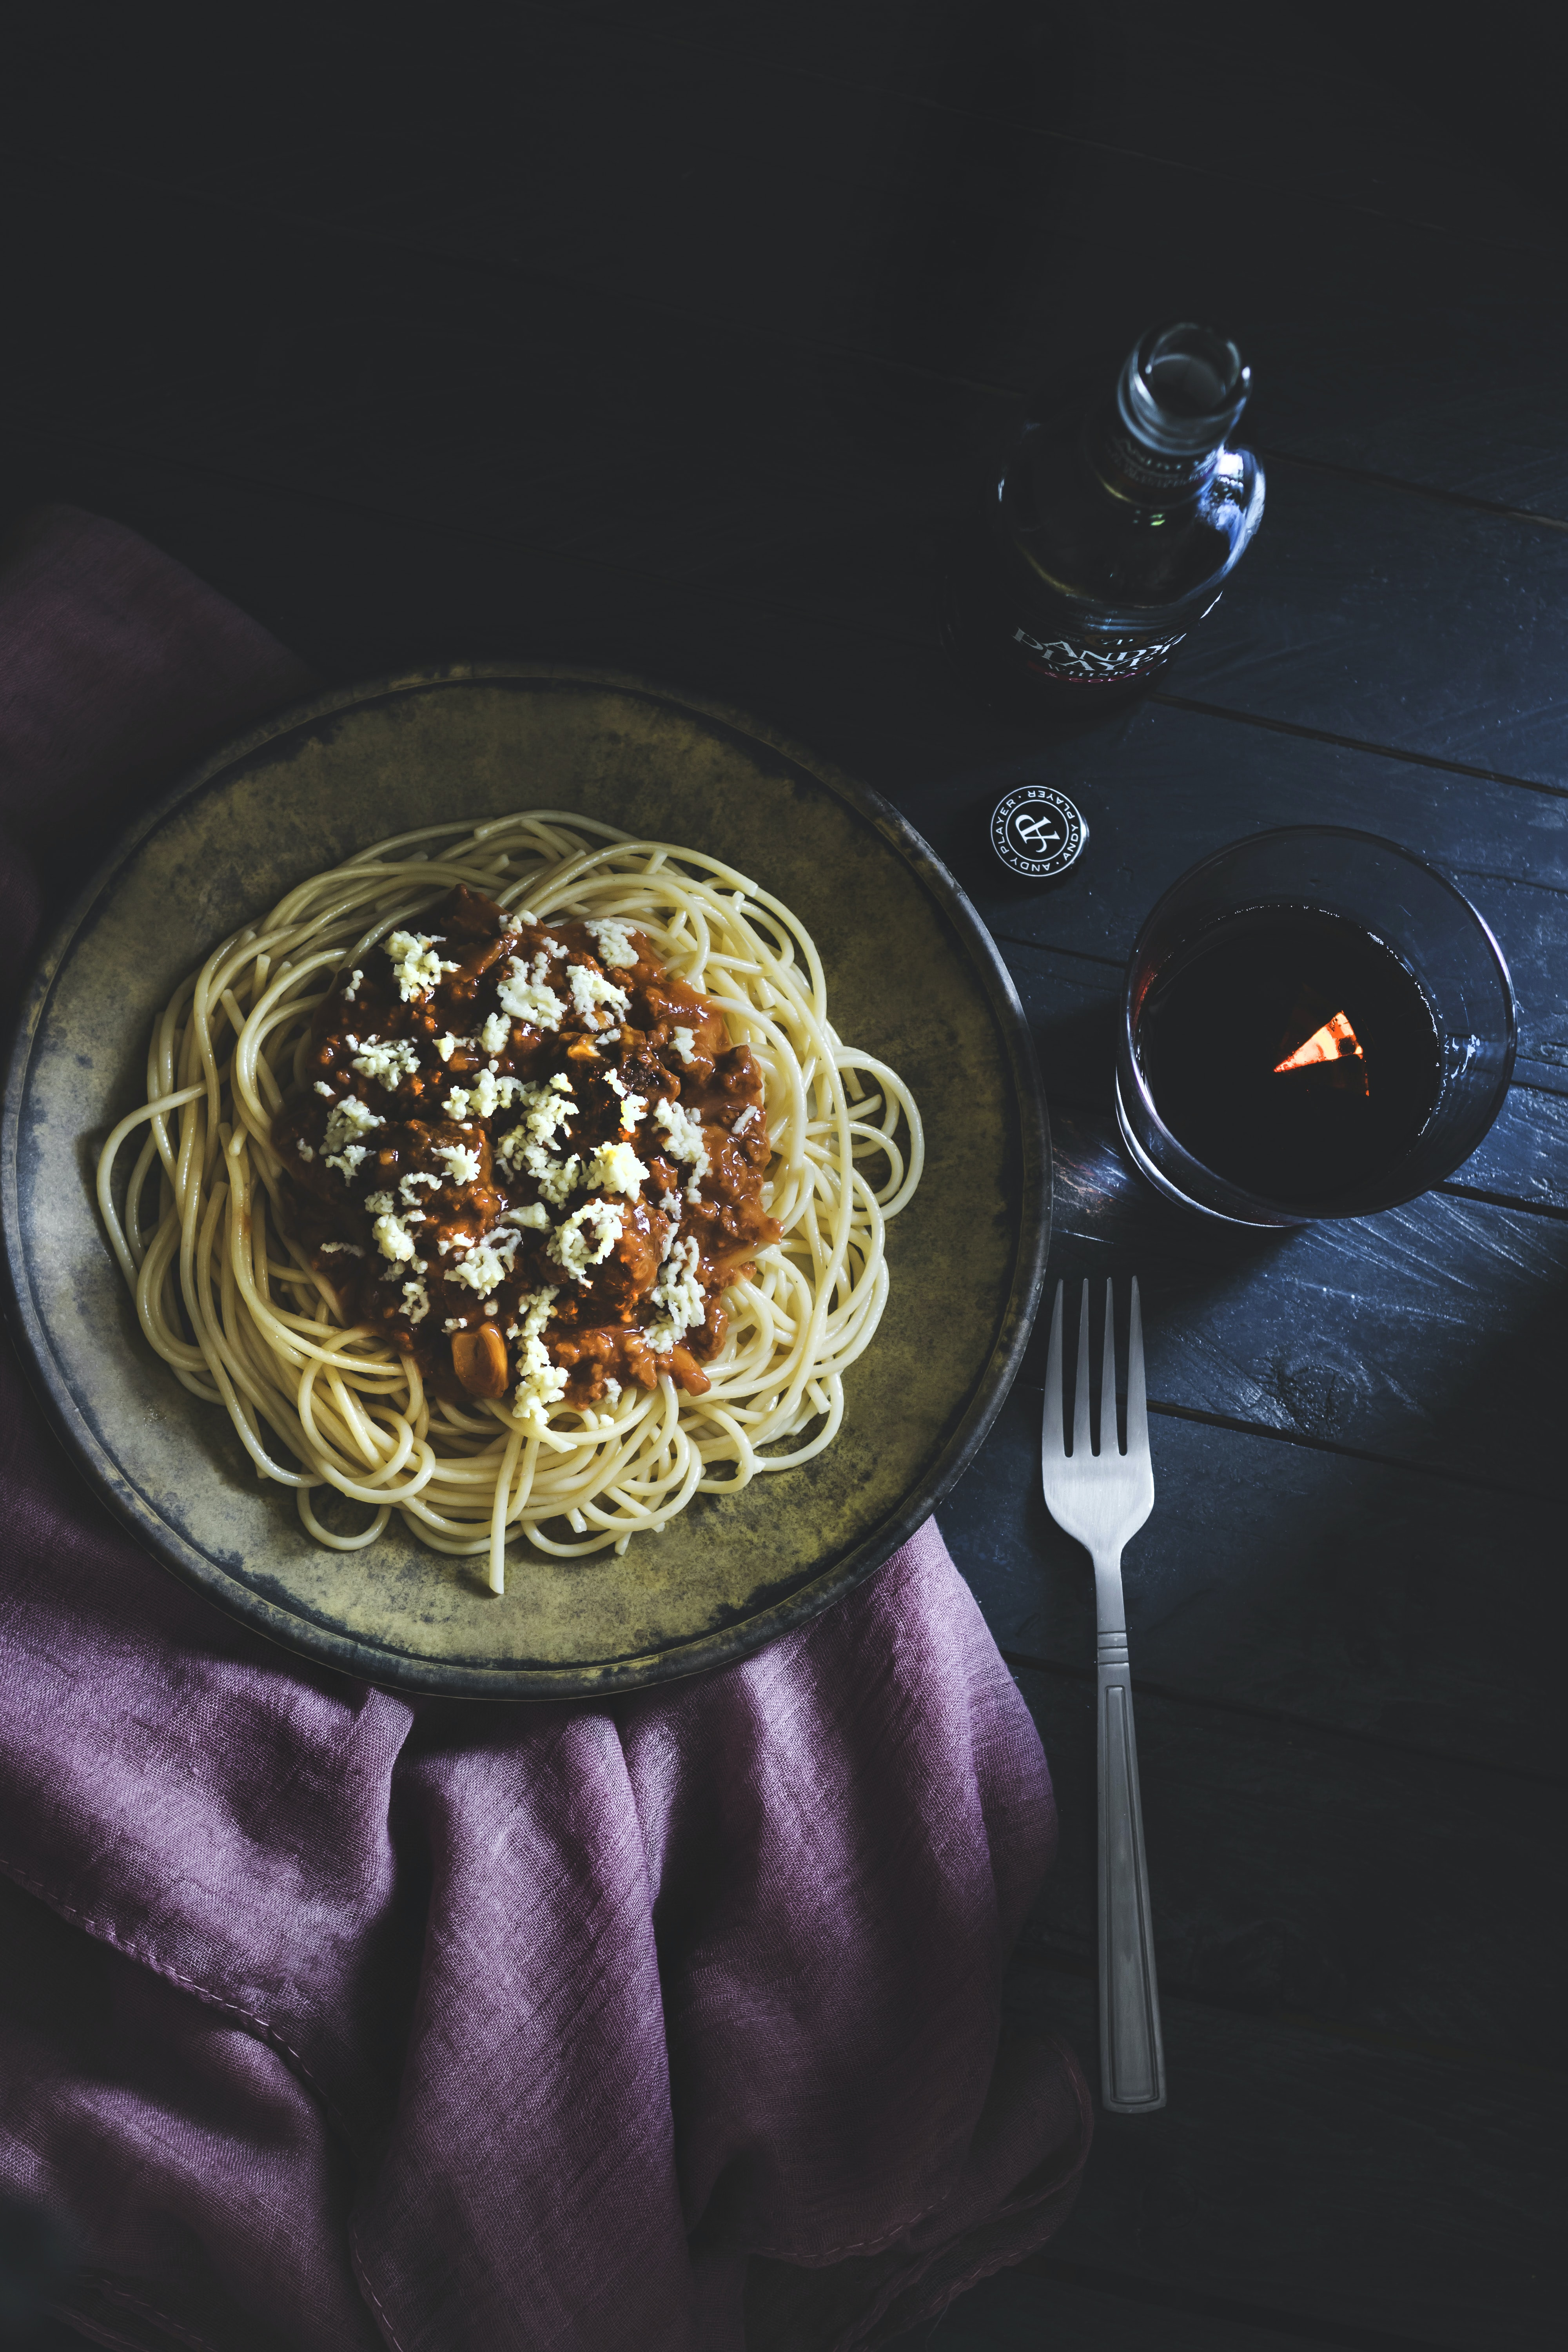 cooked pasta dish on round brown ceramic plate